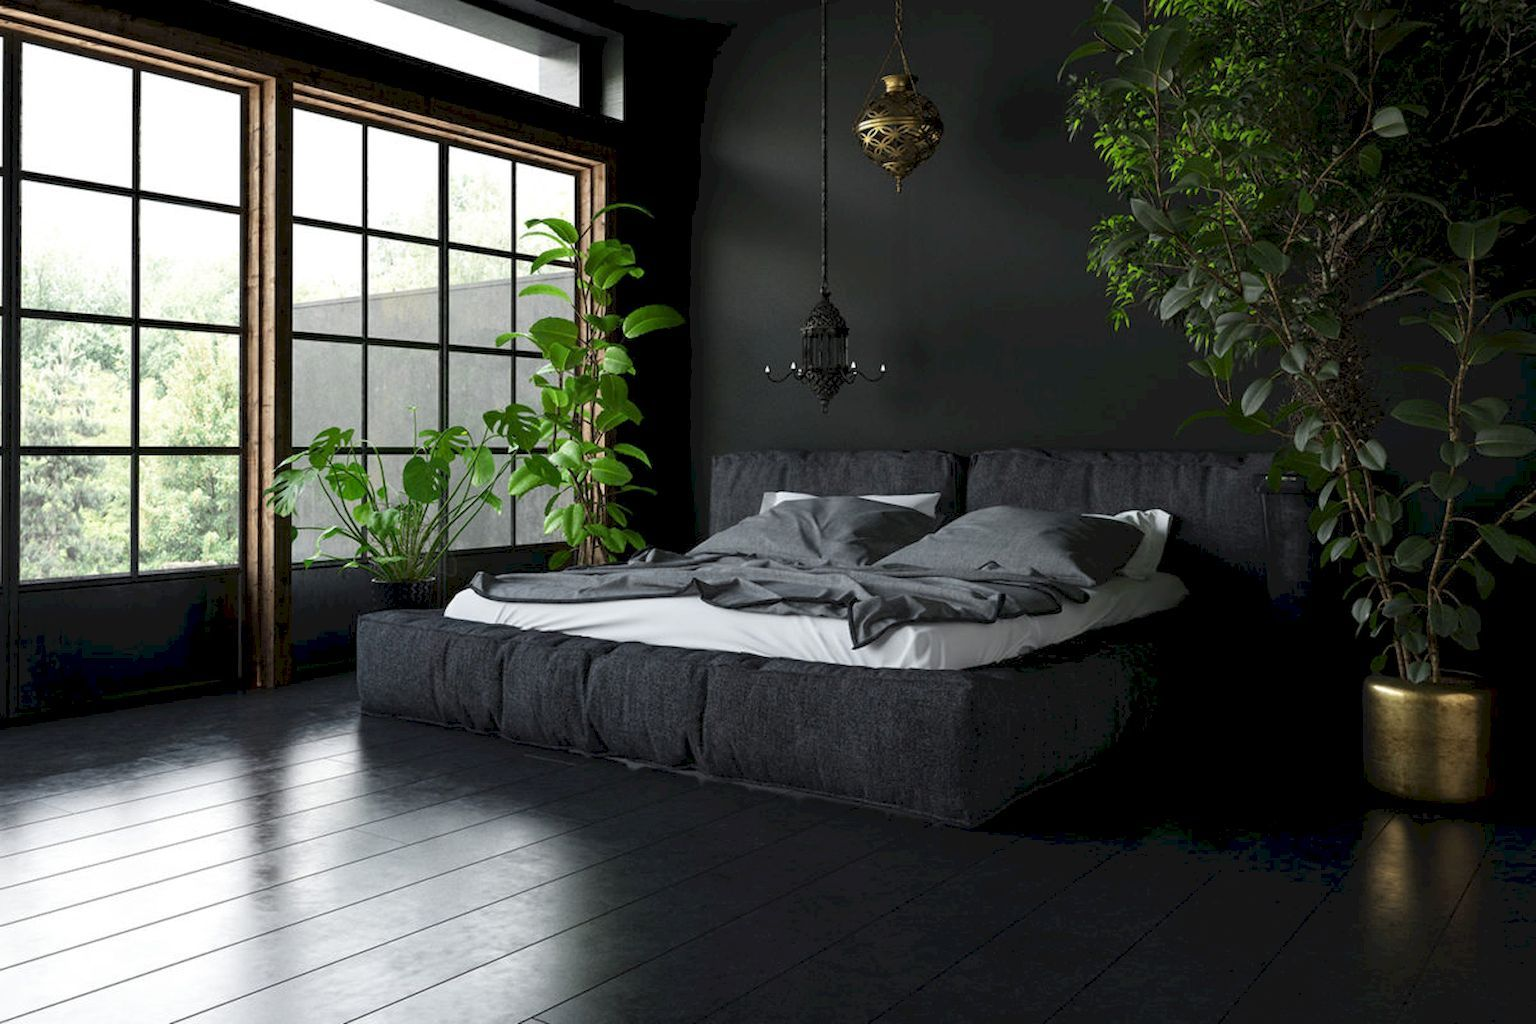 65 Gorgeous Dark Bedroom Decorating Ideas In 2020 With Images Bedroom Decor Dark Black Walls Bedroom Dark Interiors